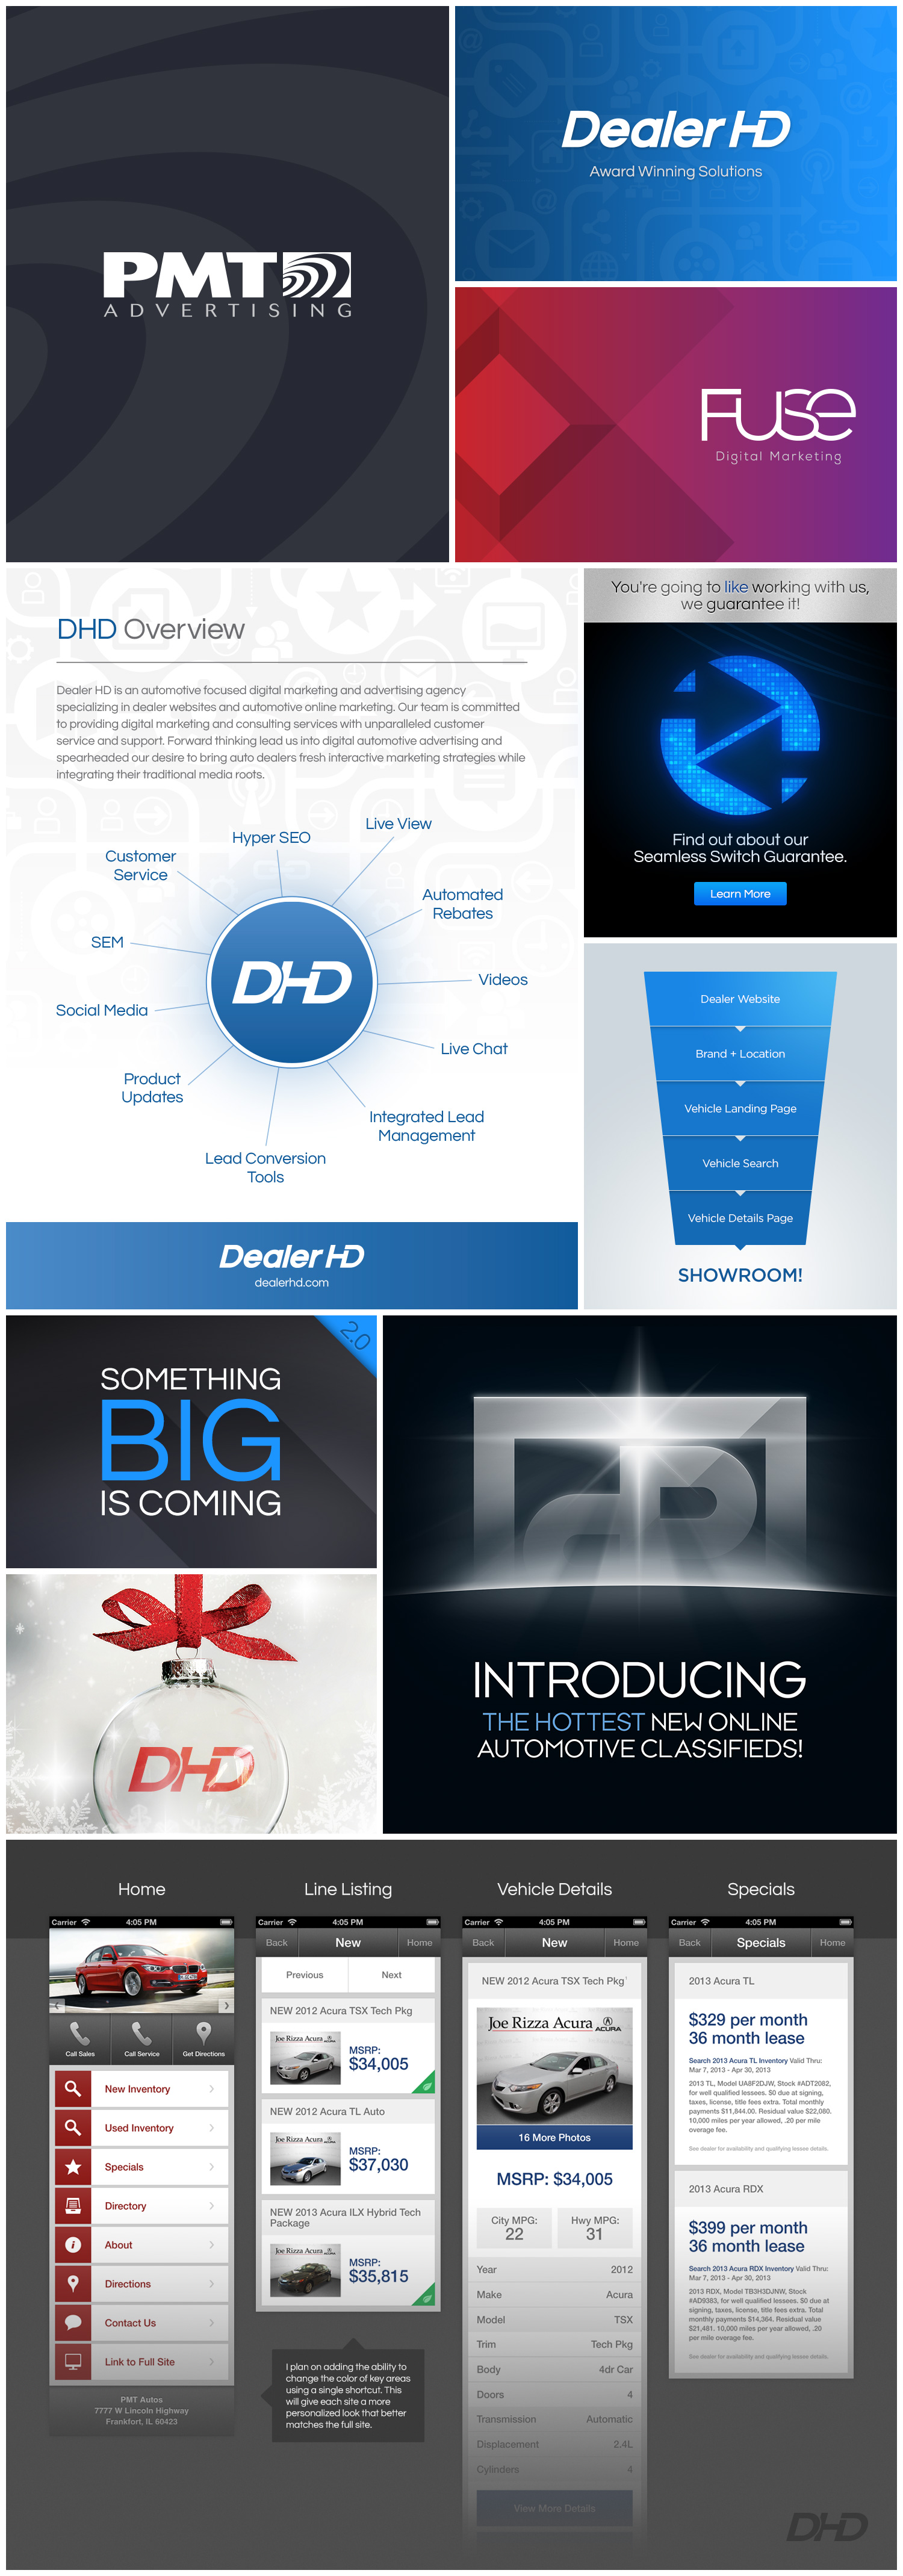 Internal branding designs